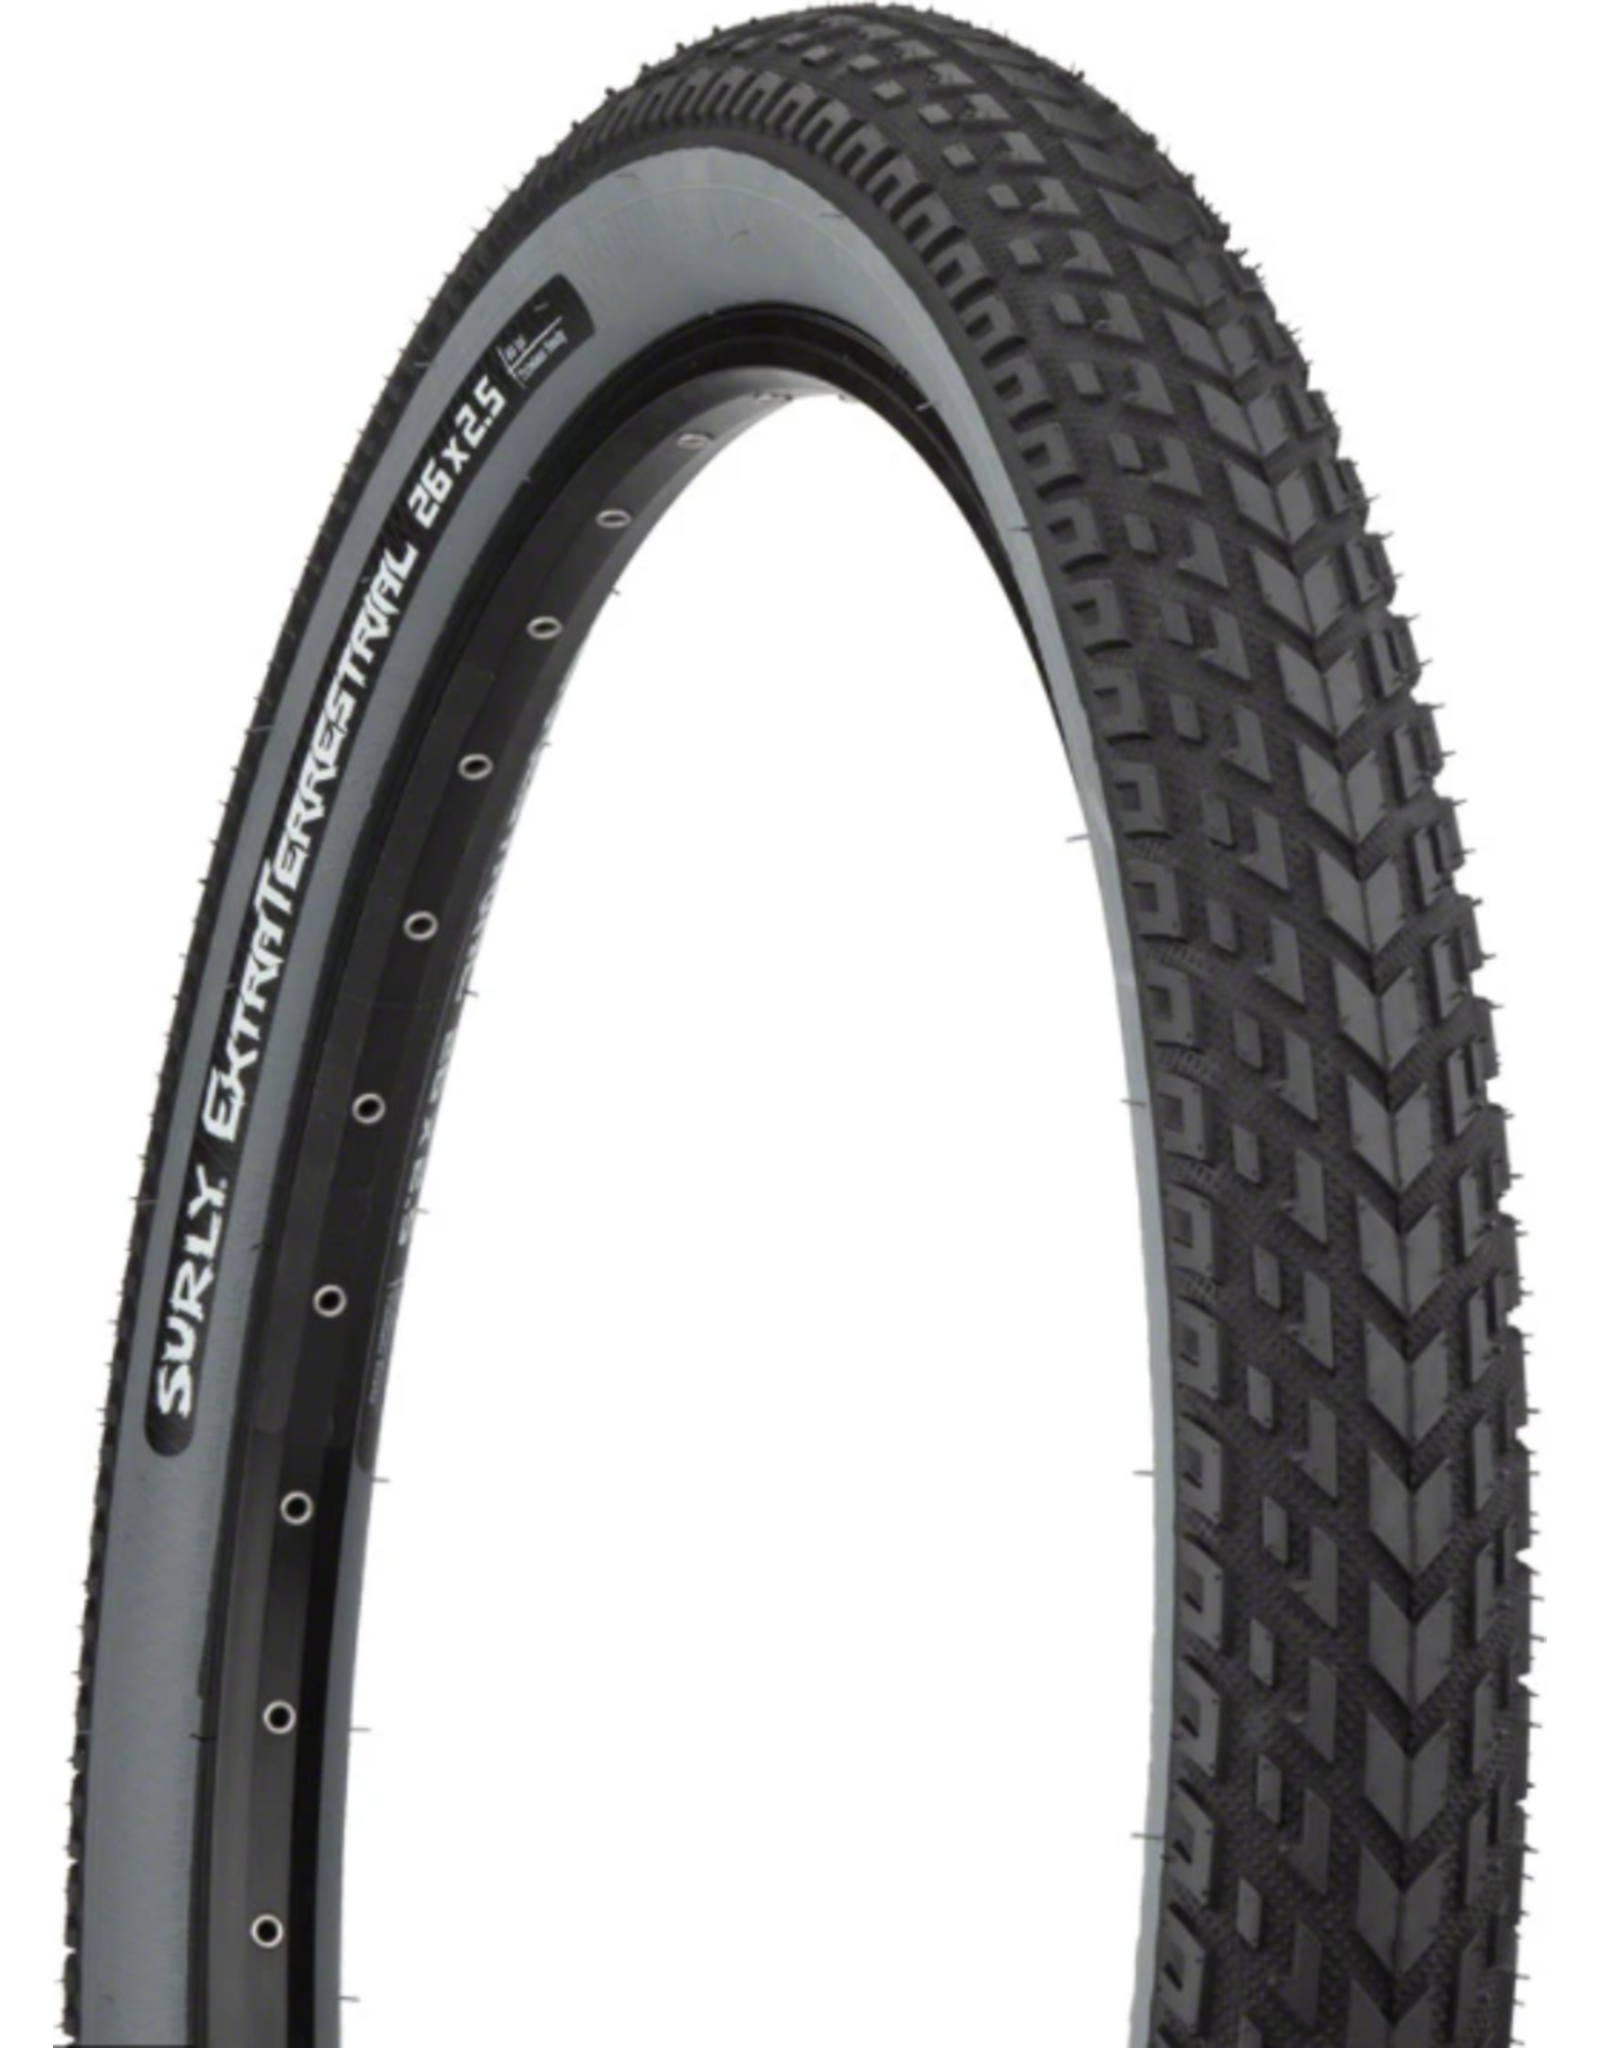 Surly Surly ExtraTerrestrial Tire - 26 x 2.5, Tubeless, Folding, Black/Slate, 60tpi